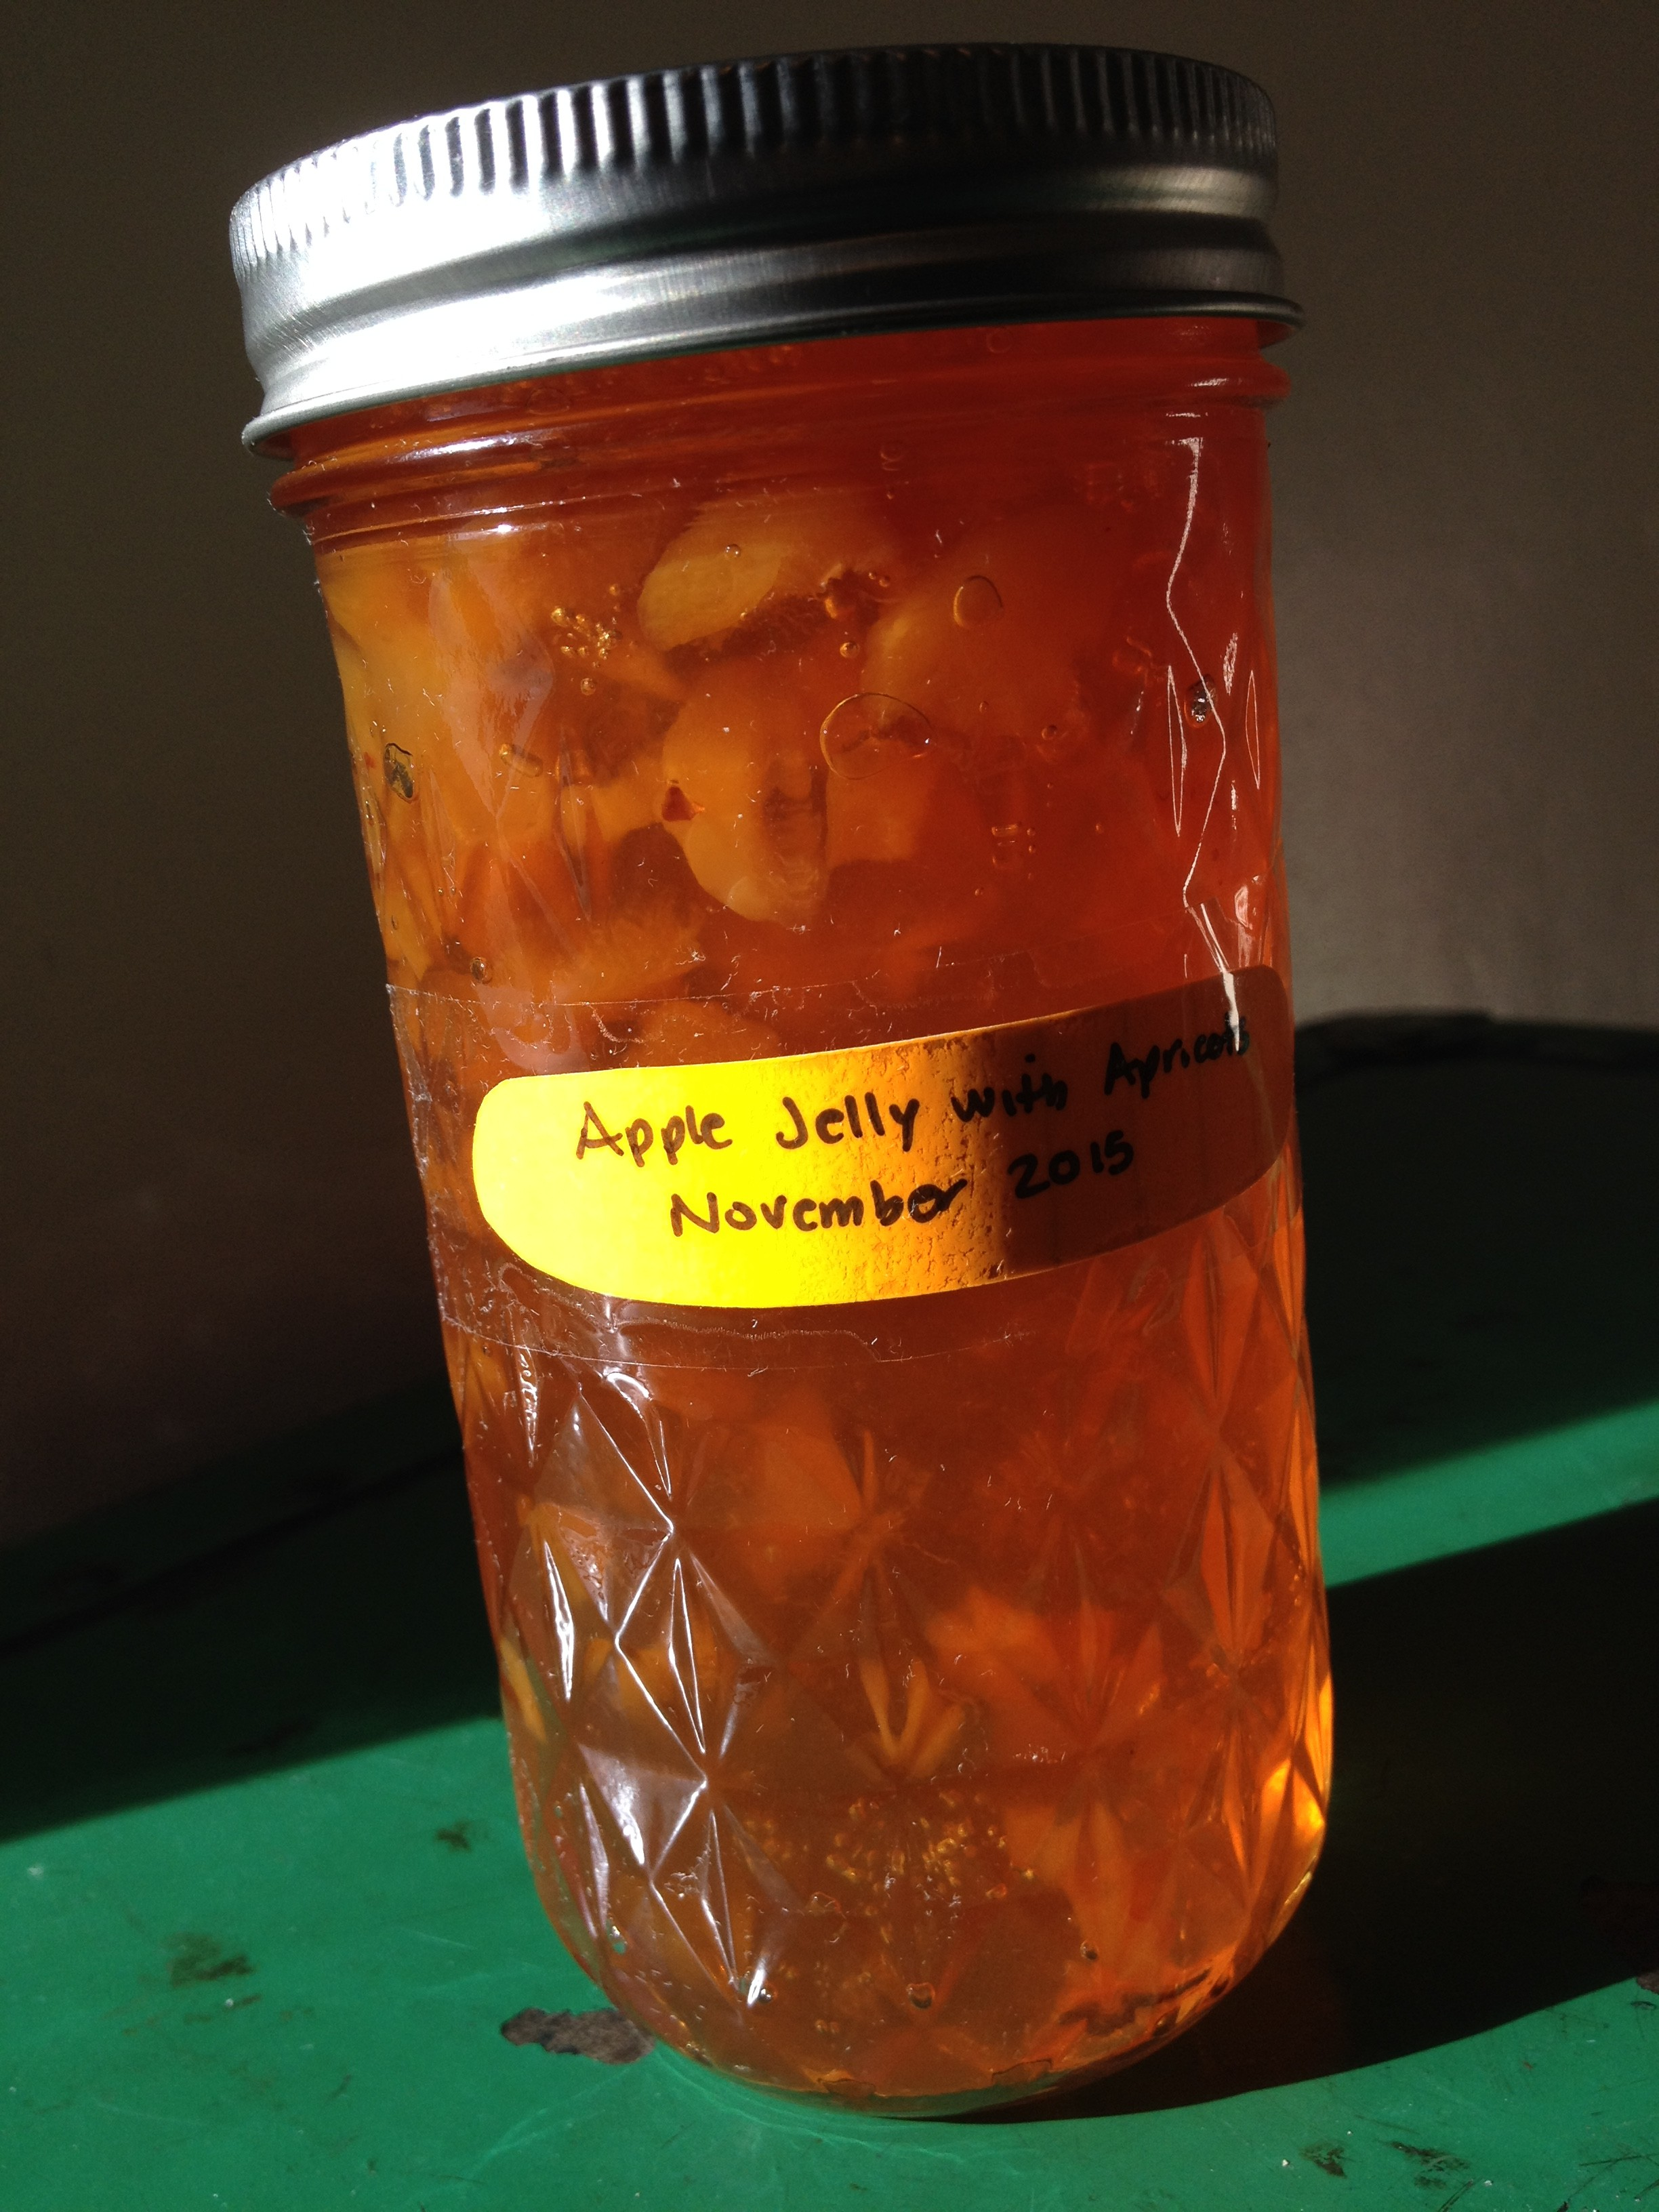 Apple Jelly with Apricots